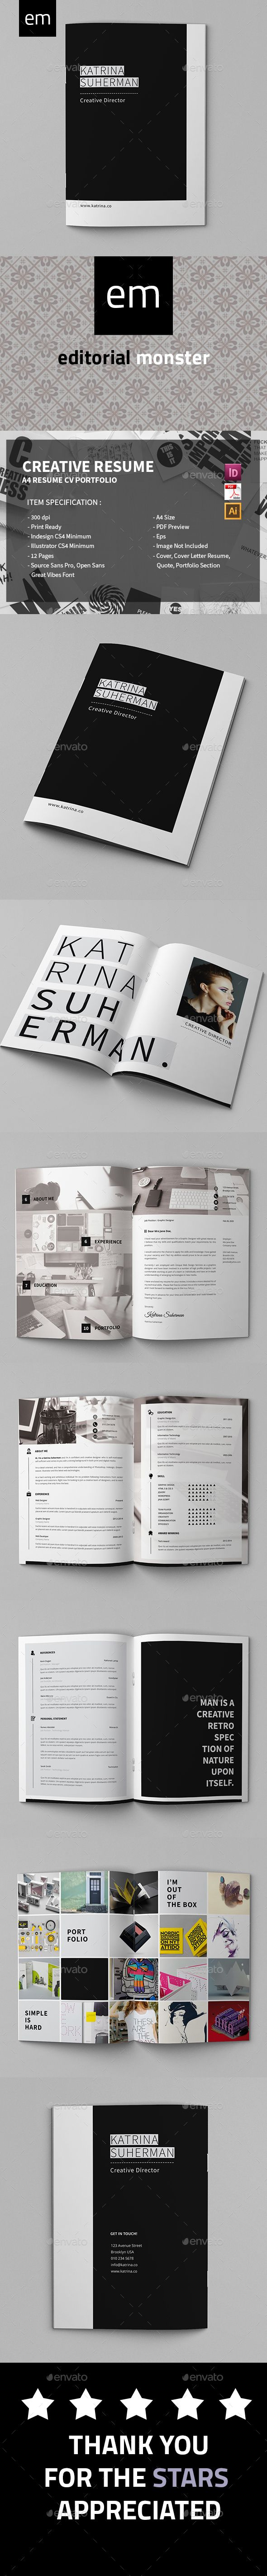 Pin by Tenia Wallace on Design | Resume design template ...